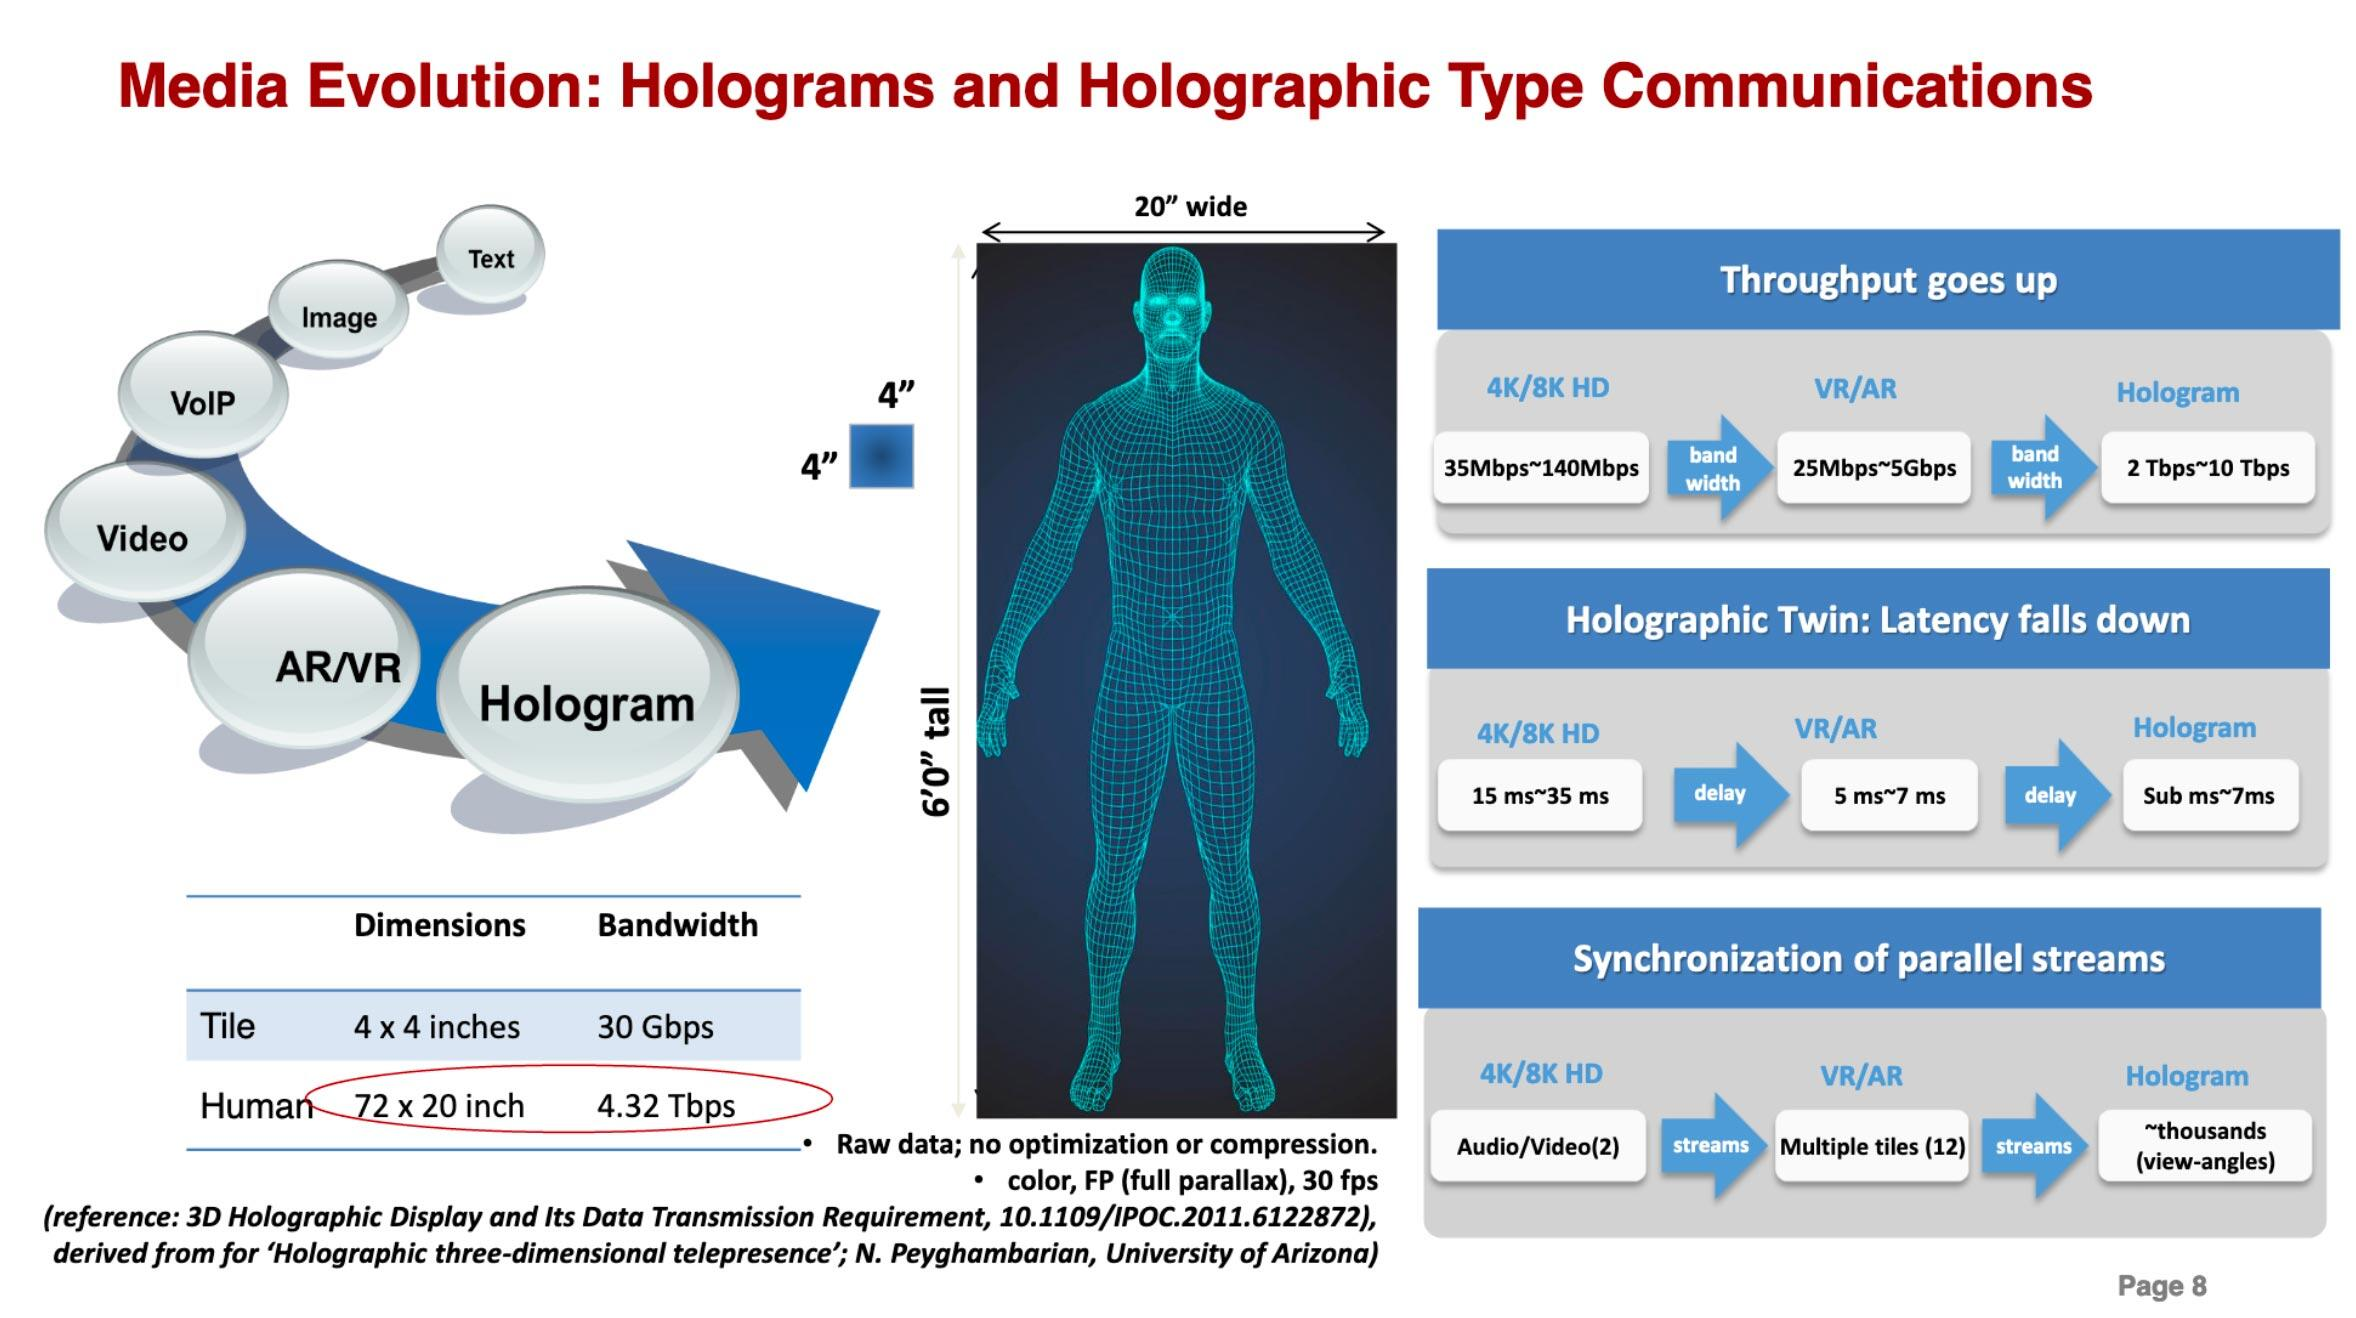 Holographic communications don't exist today, but if they're invented, they'll need huge network capacity combined with low communication delays. It's technology China believes its New IP will handle but existing internet technology can't.